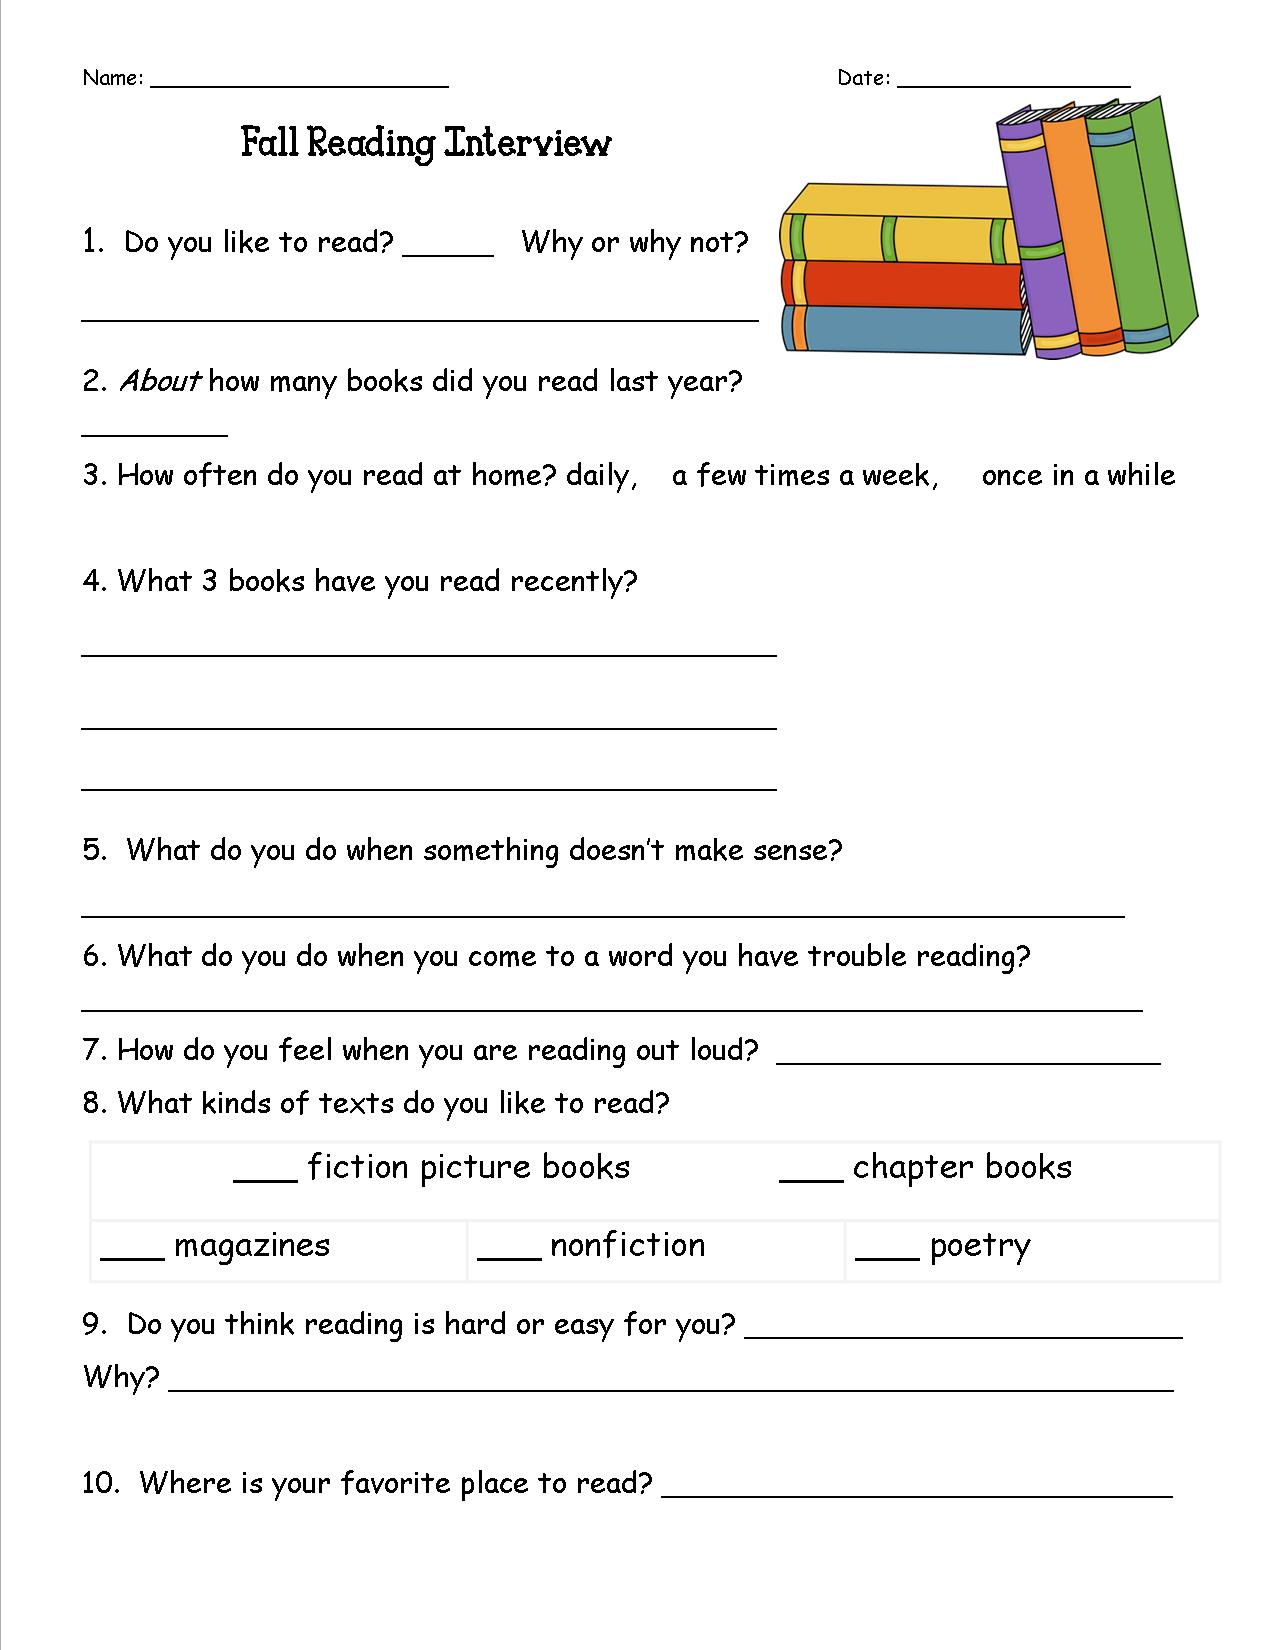 Reading habits interview - One of your students left their book on the table ...